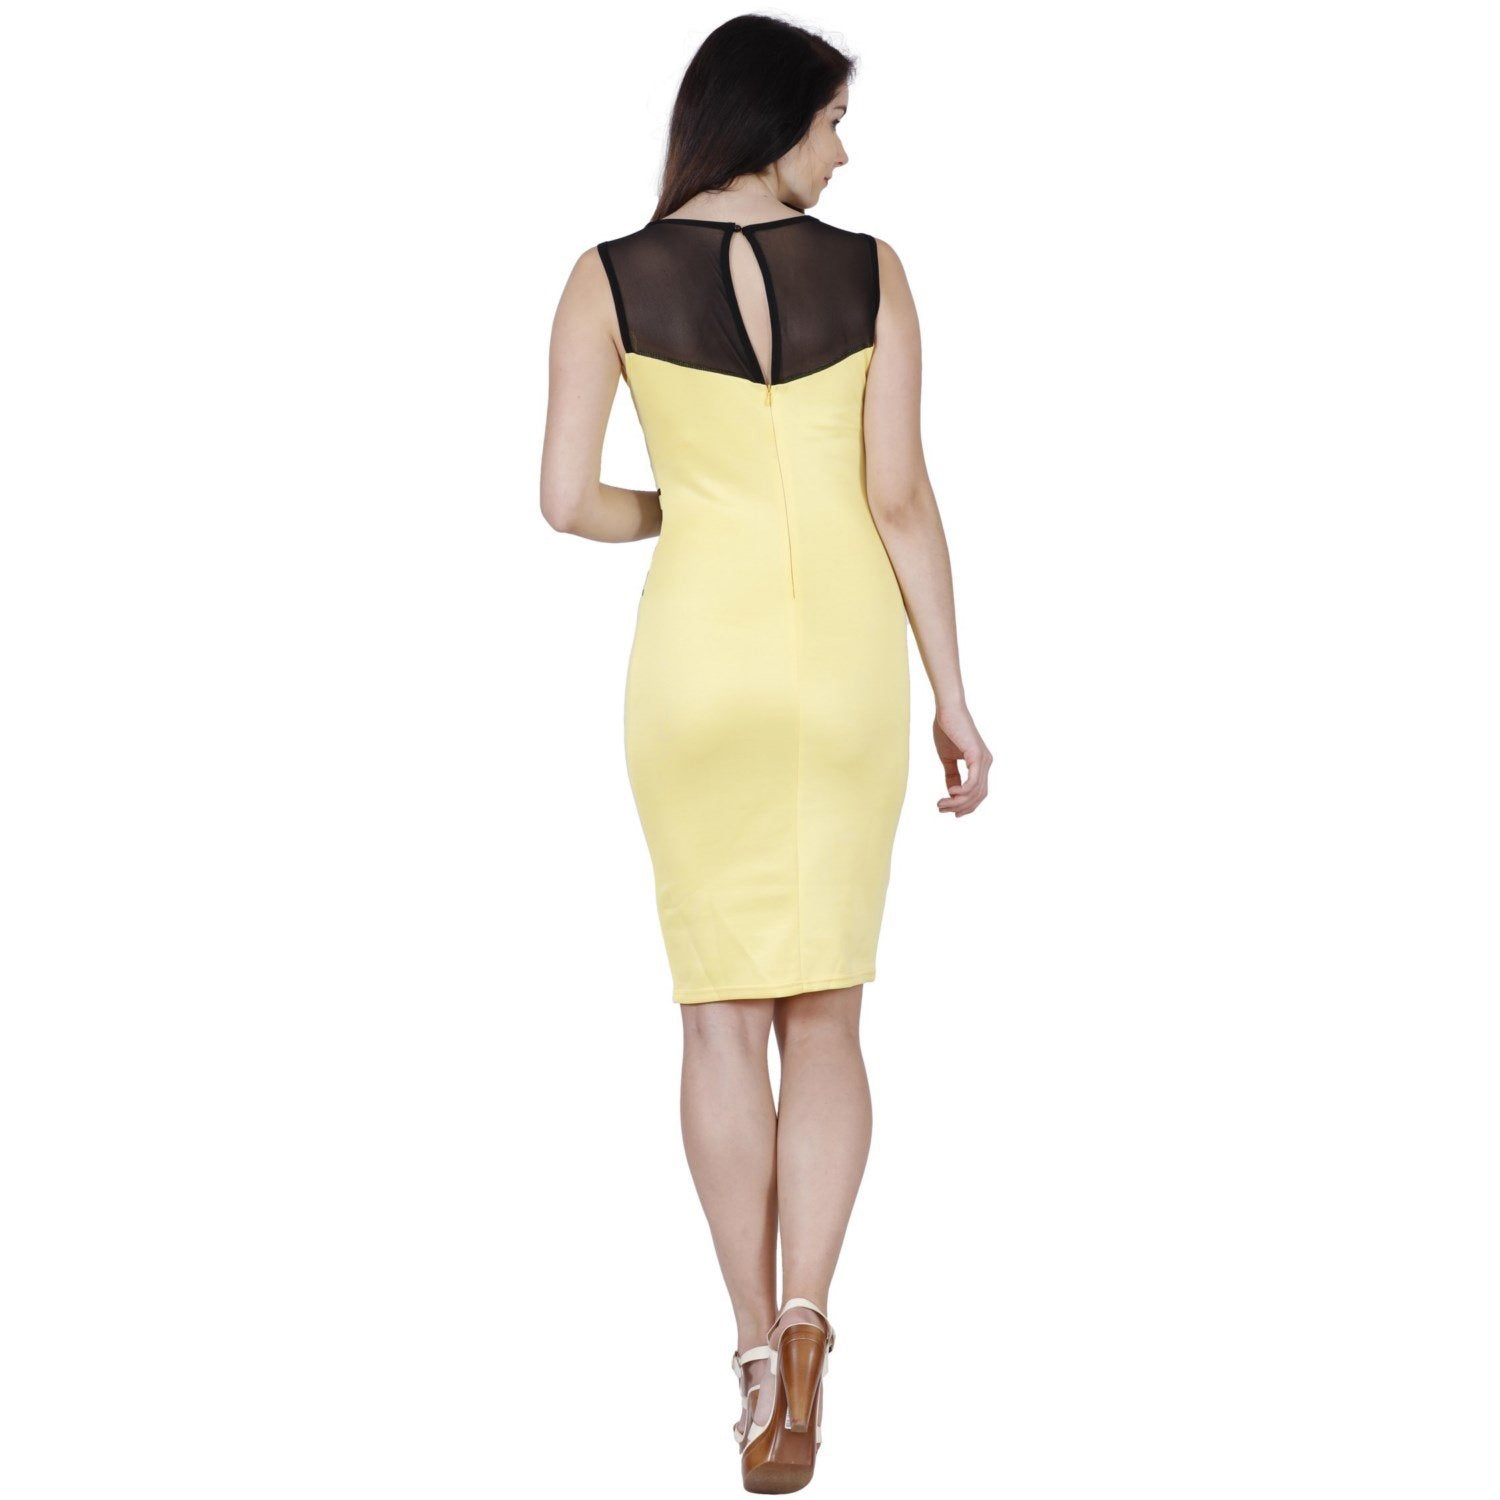 Jaune Asteria Canary Sheath Dress